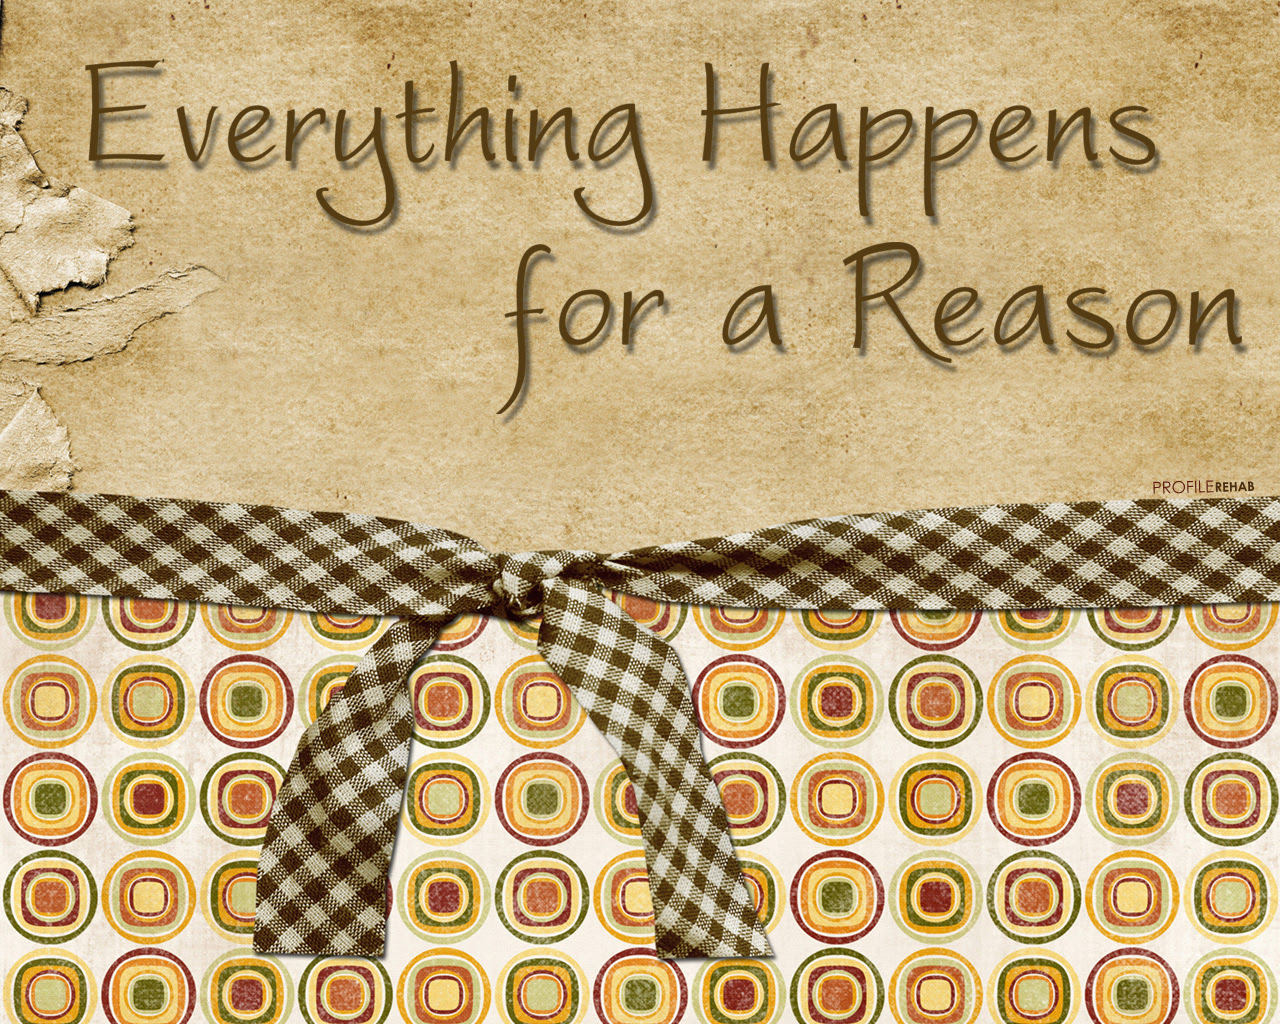 1280x1024 Everything Happens For A Reason Quote Wallpaper Vintage